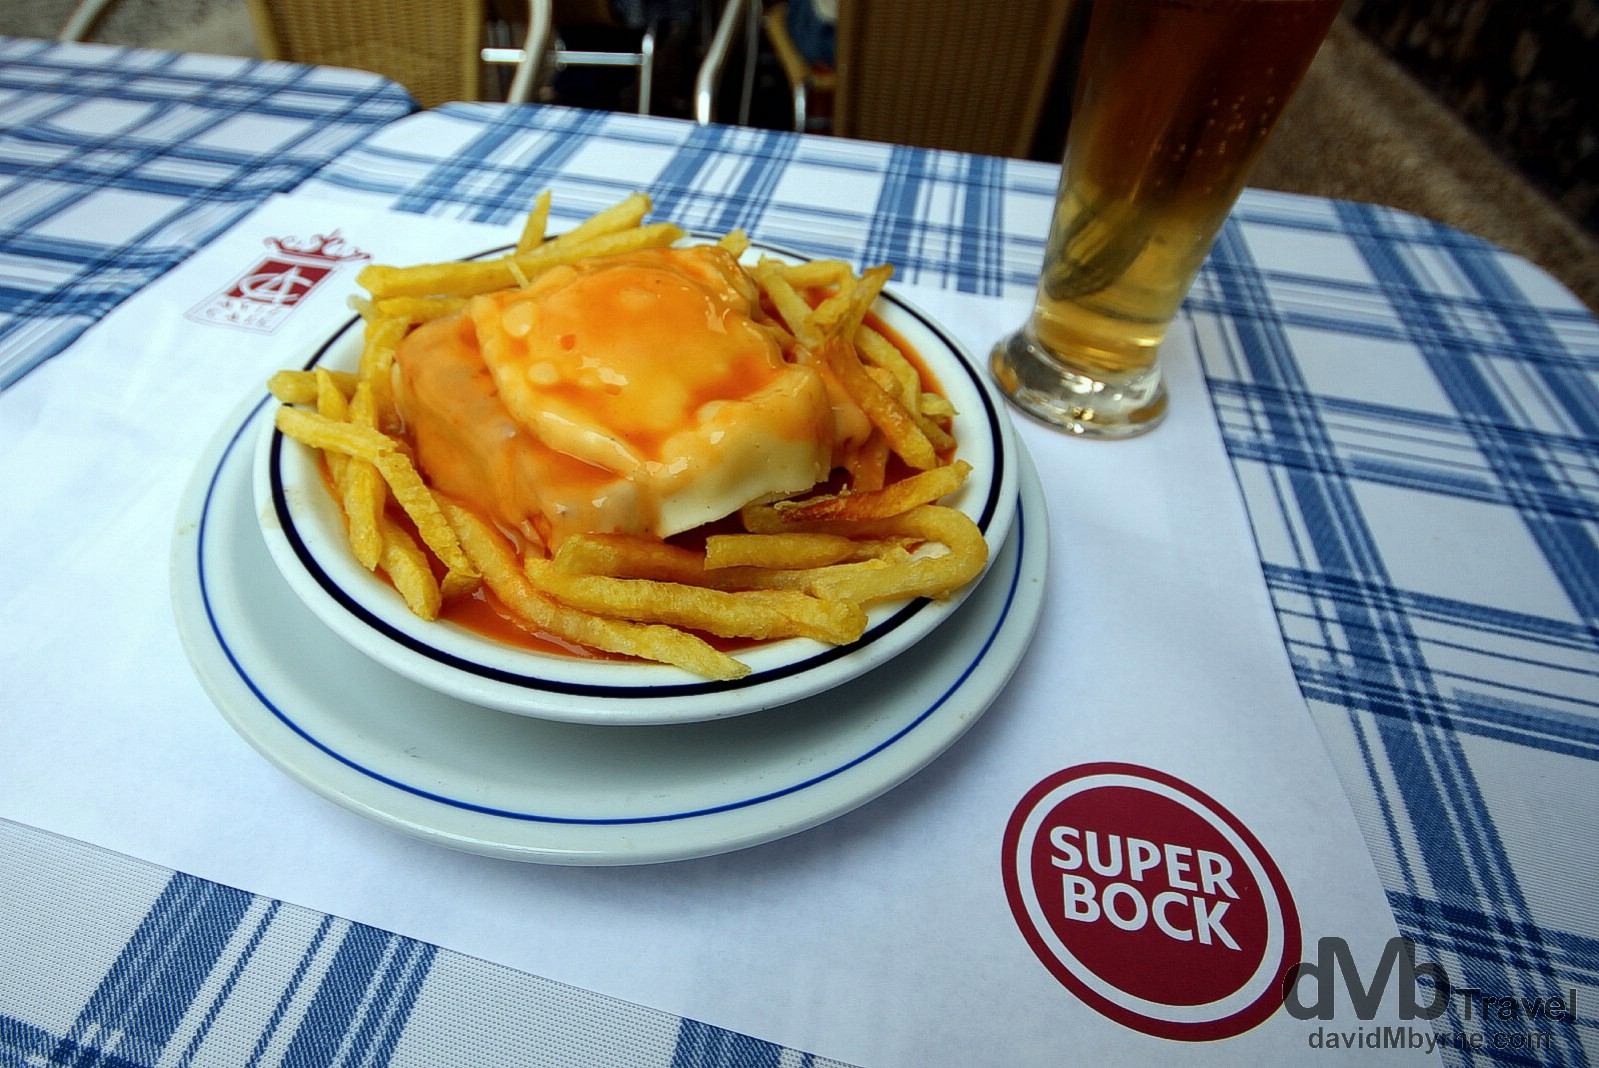 Francesinhas. The Little French Lady, or francesinha as it's known to the locals, is a Porto 'speciality' & by the looks of it a heart attack waiting to happen. Invented in the 1960s, it's a popular dish in Porto while enjoying cult appeal elsewhere. It's a sandwich, a stacked, messy one eaten with a knife & fork. There is no standard recipe (seemingly anything goes) and upon dissecting my AVIZ Café francesinha I found ham, egg, sausage, cheese & olive-infused luncheon meat, all covered in a red tomoto & beer-based sauce. Served with fries and washed down with a Super Bock is quintessential Porto. AVIZ Café, Porto, Portugal. August 28th 2013.